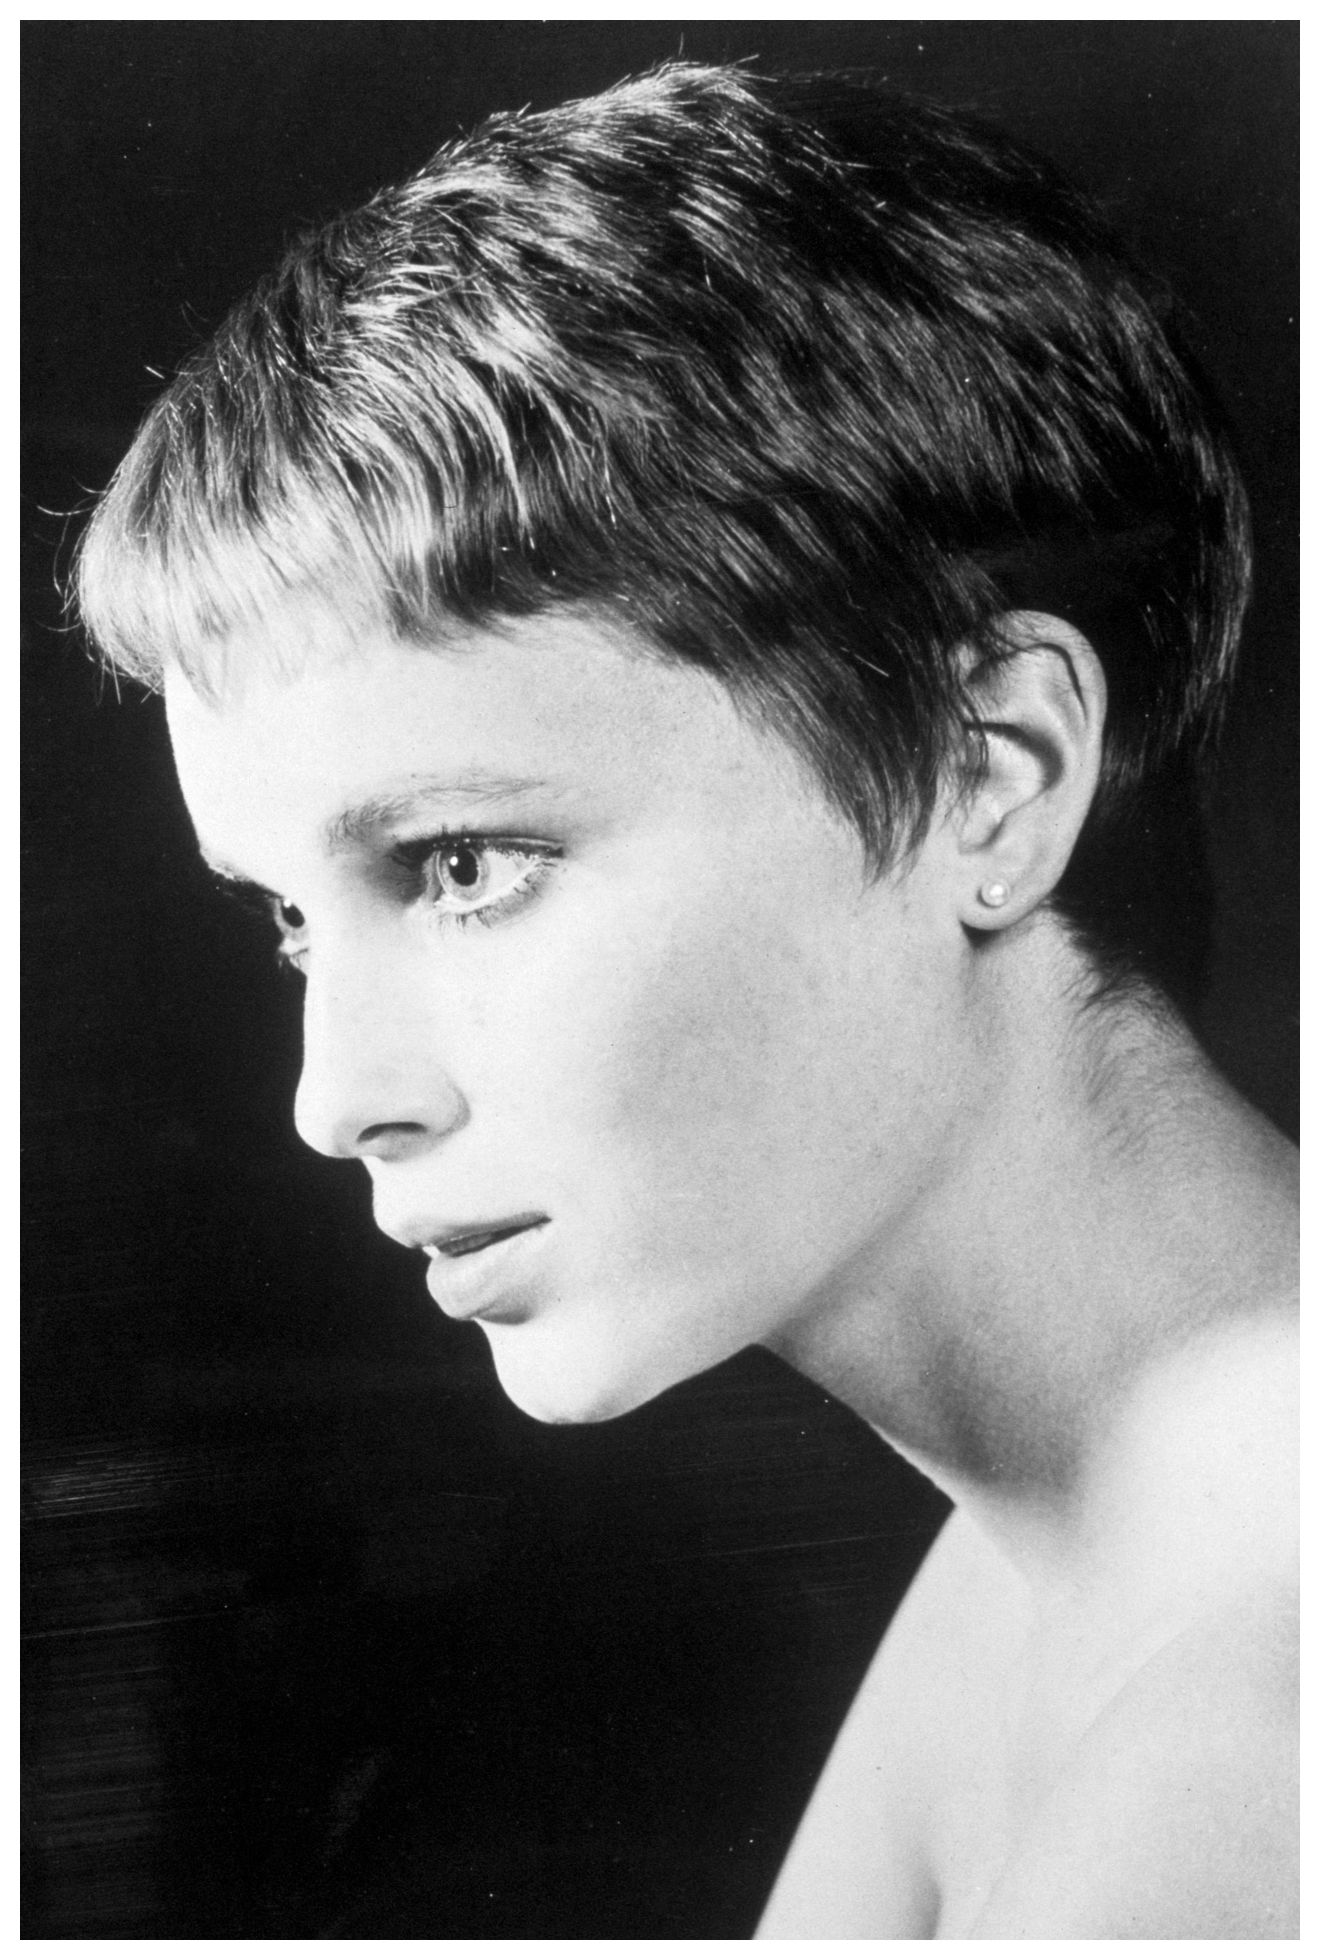 mia farrow haircutmia farrow young, mia farrow pixie cut, mia farrow son, mia farrow great gatsby, mia farrow the red list, mia farrow imdb, mia farrow lullaby, mia farrow connecticut, mia farrow zelig, mia farrow astrotheme, mia farrow photo, mia farrow height, mia farrow interview, mia farrow wiki, mia farrow wedding dress, mia farrow now, mia farrow alice, mia farrow woody allen married, mia farrow haircut, mia farrow frank sinatra